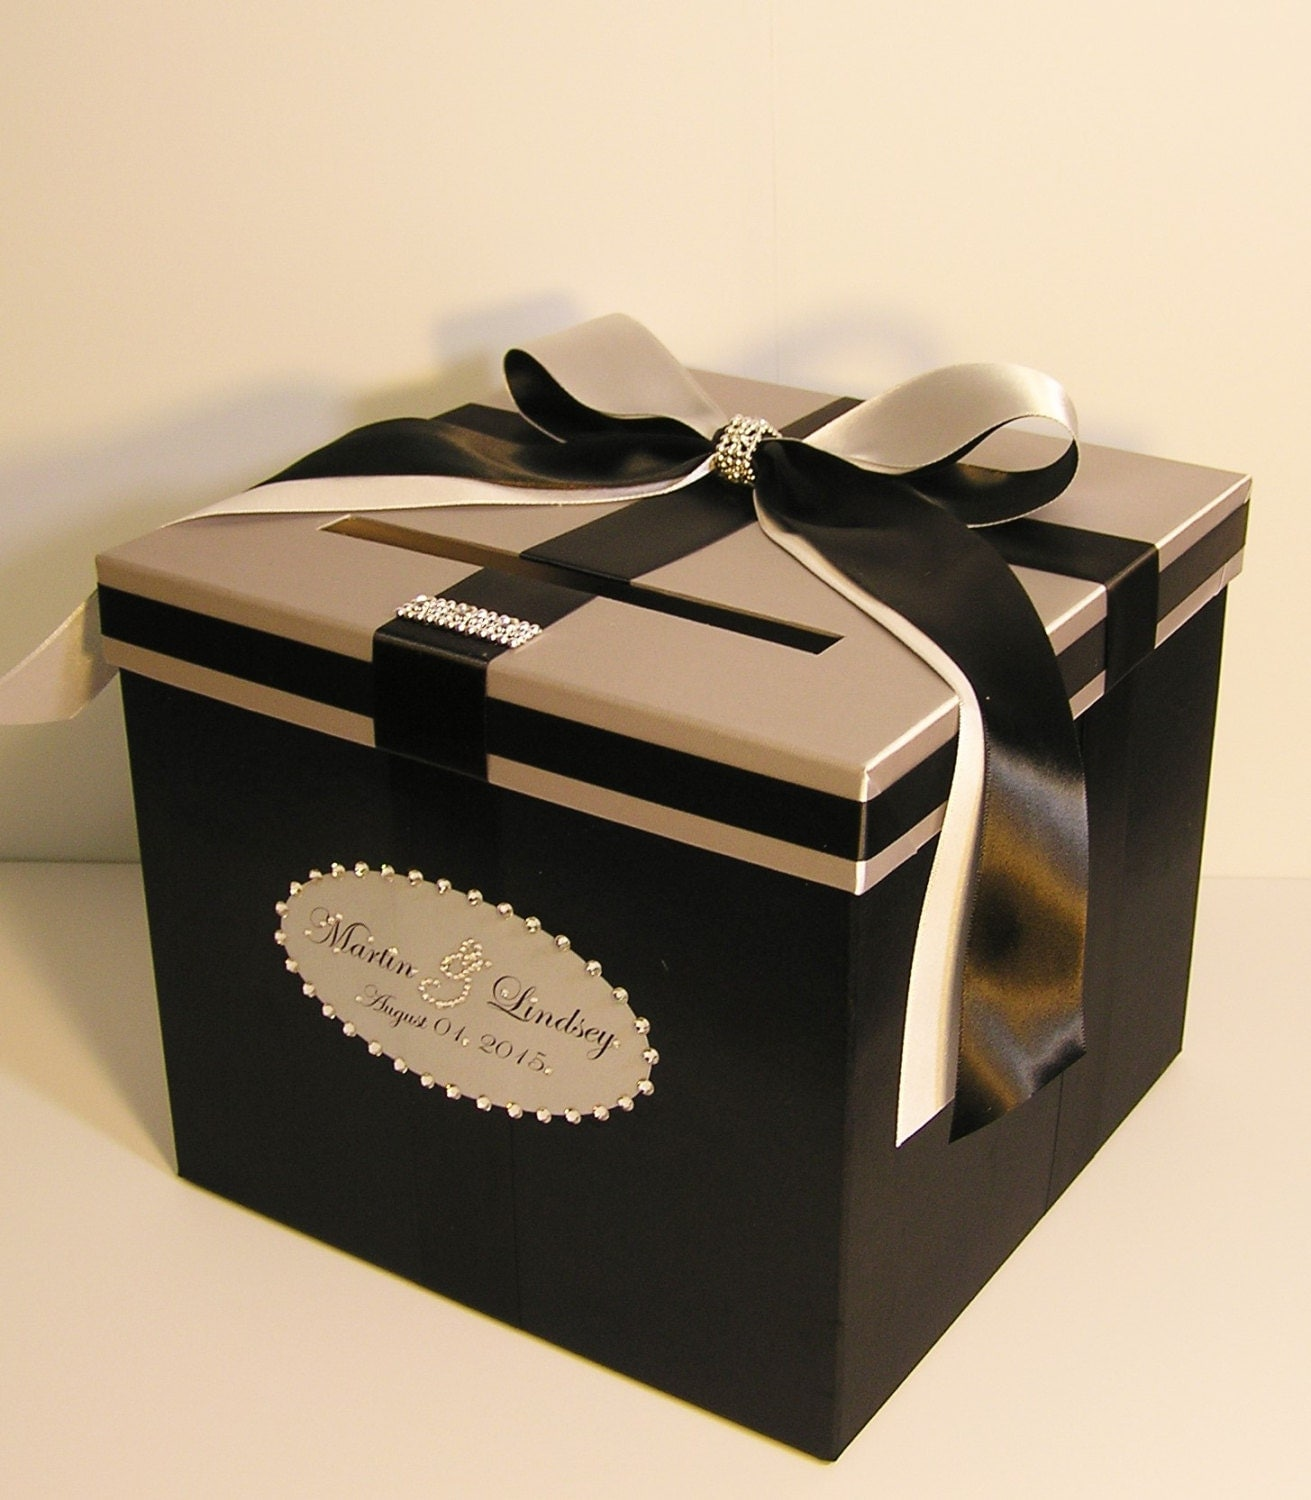 Wedding card box silver and black gift money